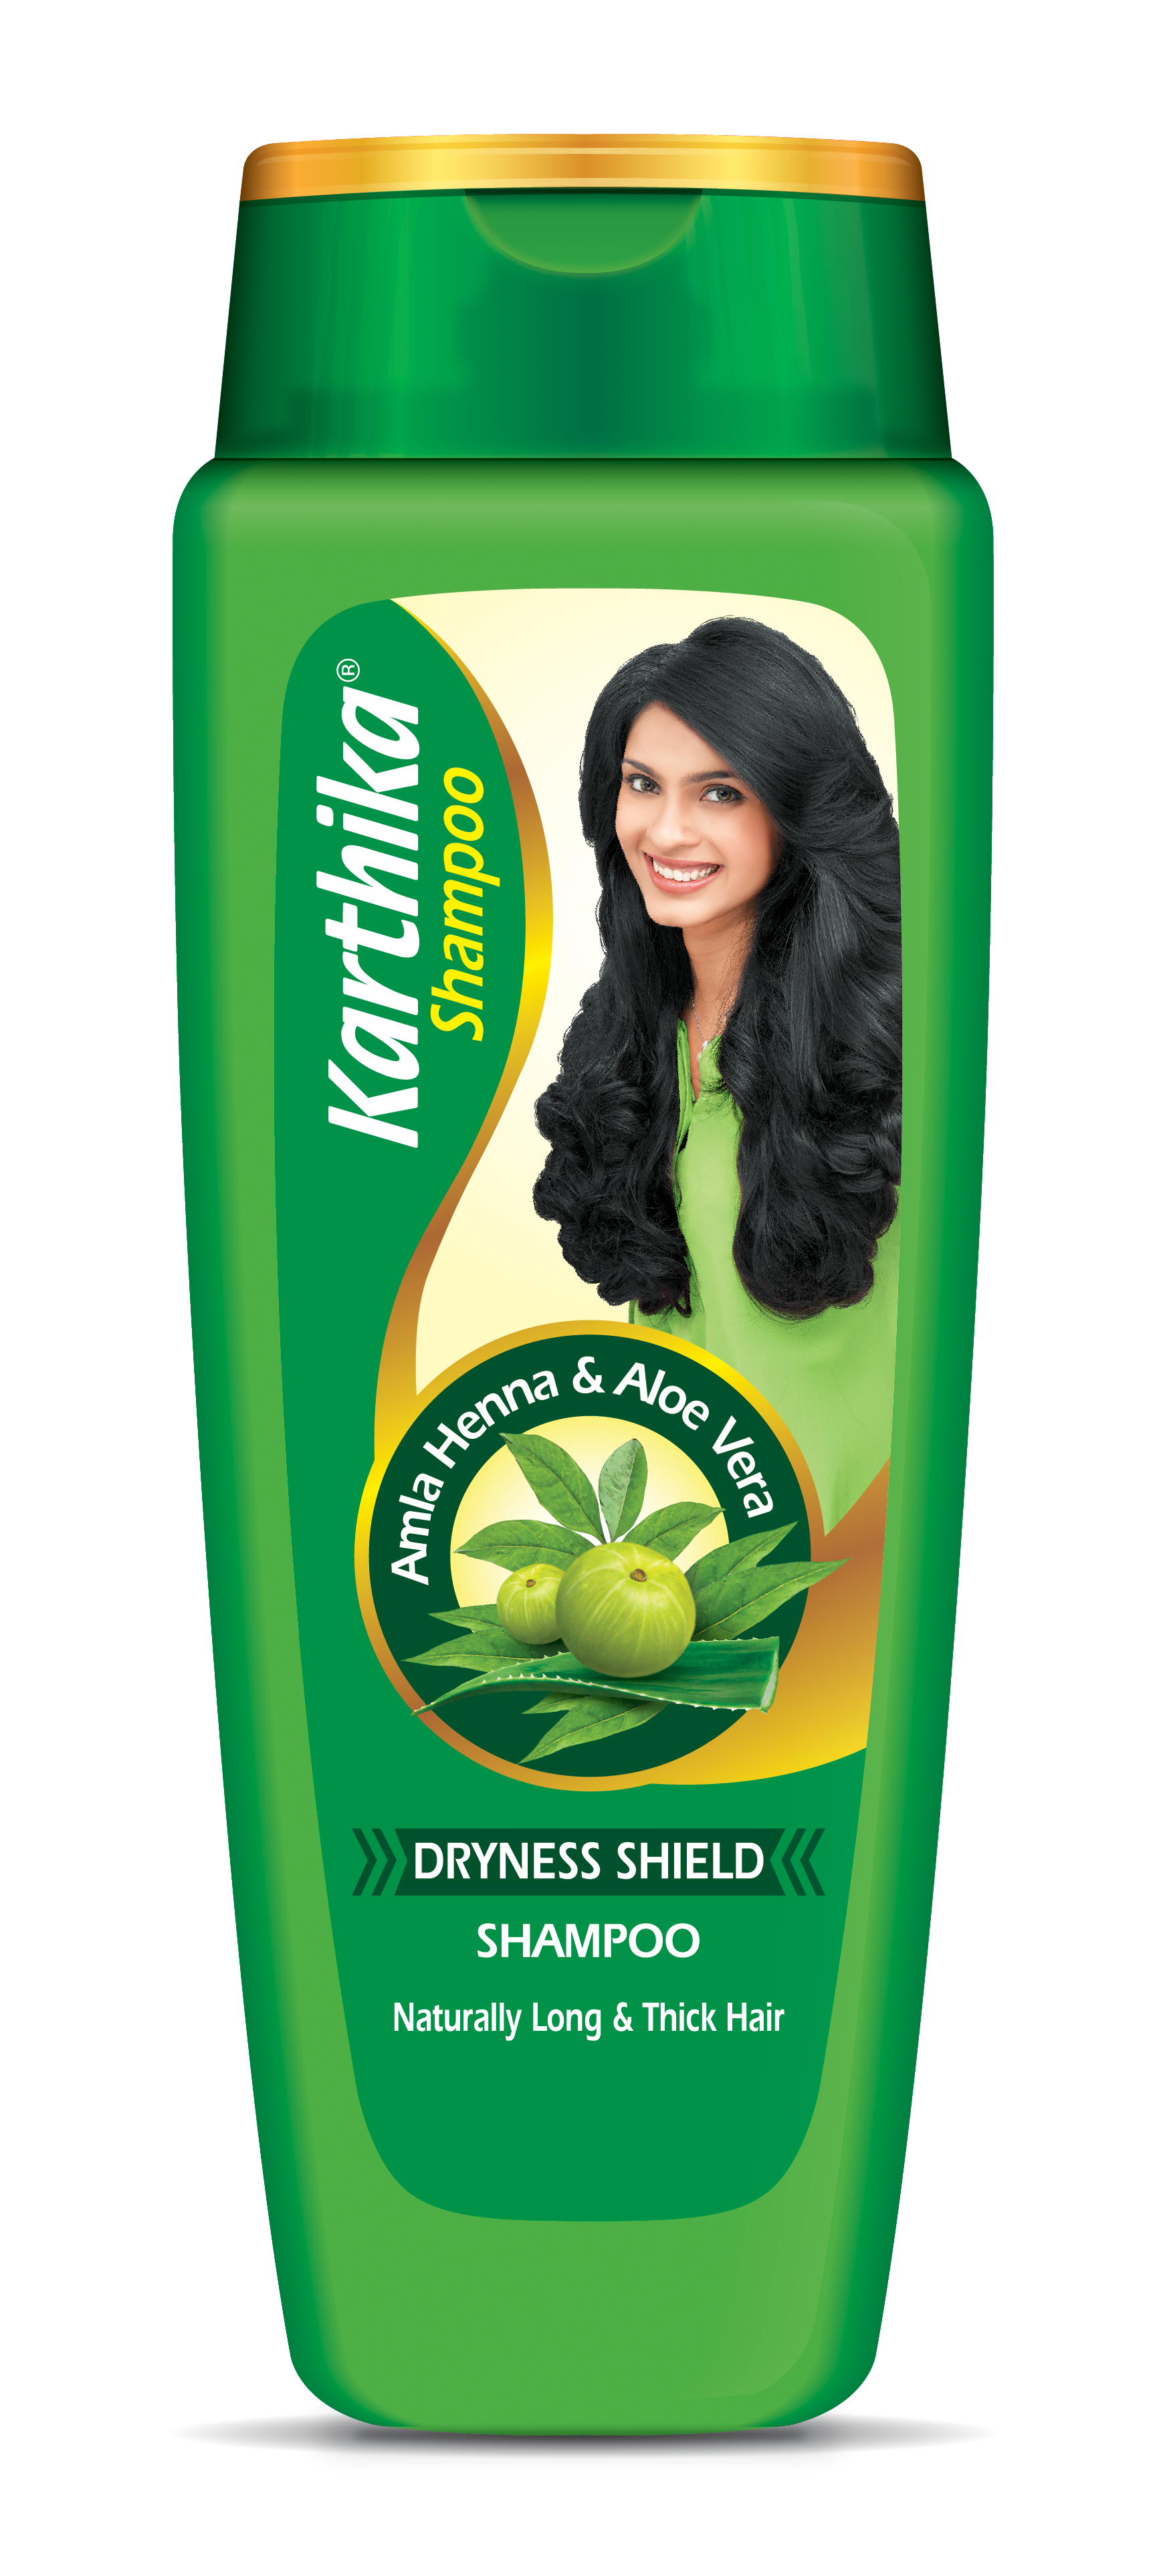 Karthika Dryness Shield Shampoo